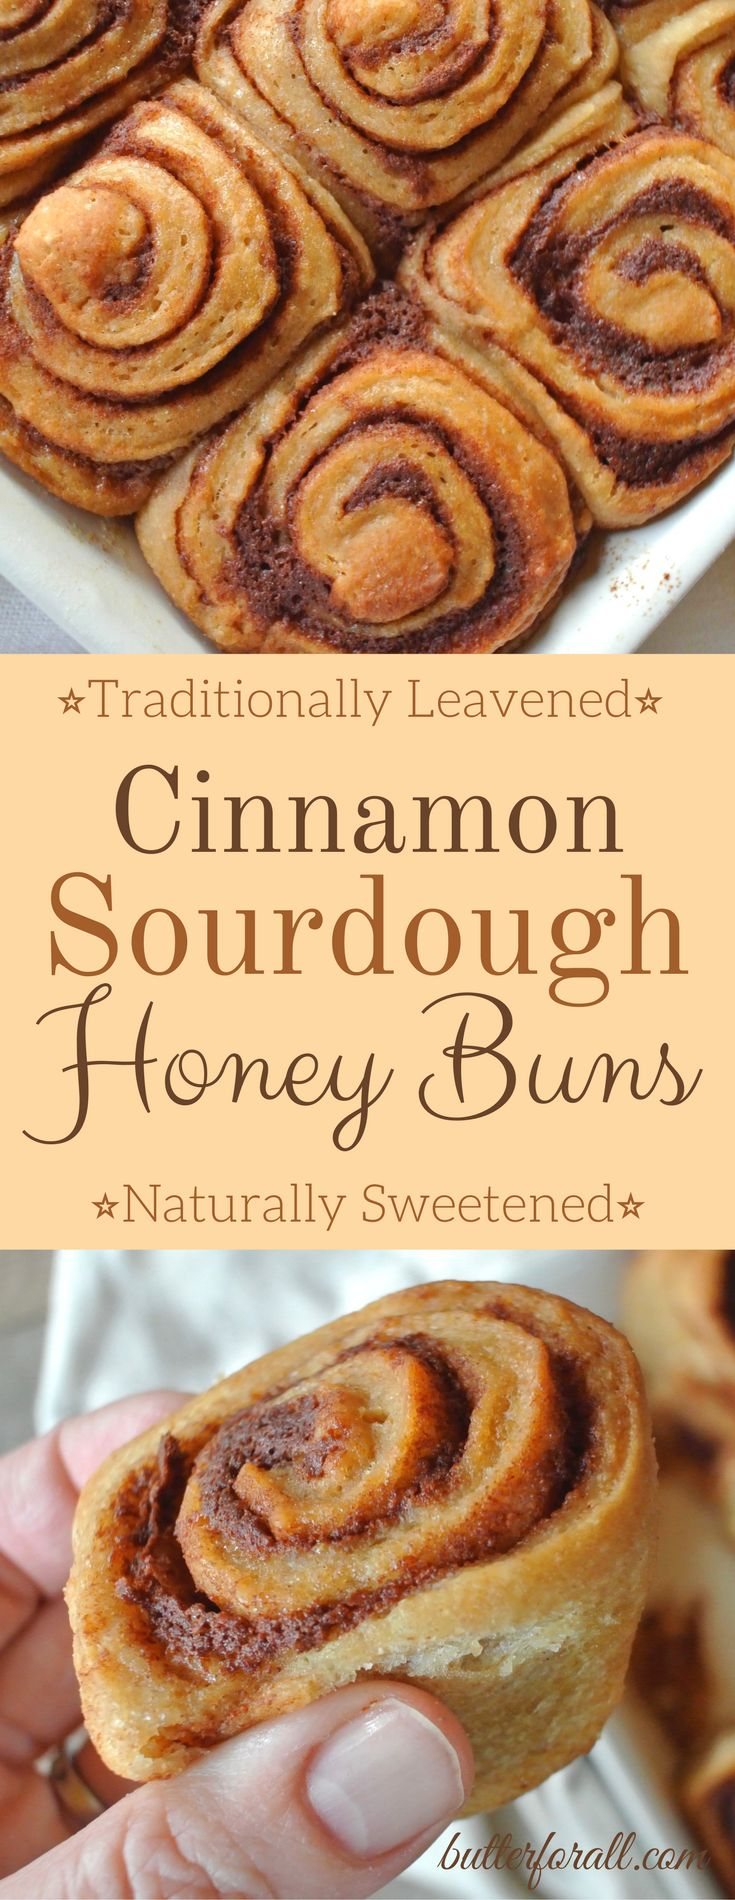 These Cinnamon Sourdough Honey Buns are traditionally leavened and naturally sweetened. Made with real food ingredients these cinnamon buns are a nourishing, wholesome treat you can feel good about sharing. Sourdough Honey Buns are great for everyday or made extra special for the Holidays. Visit the Butter For All blog to get this recipe.